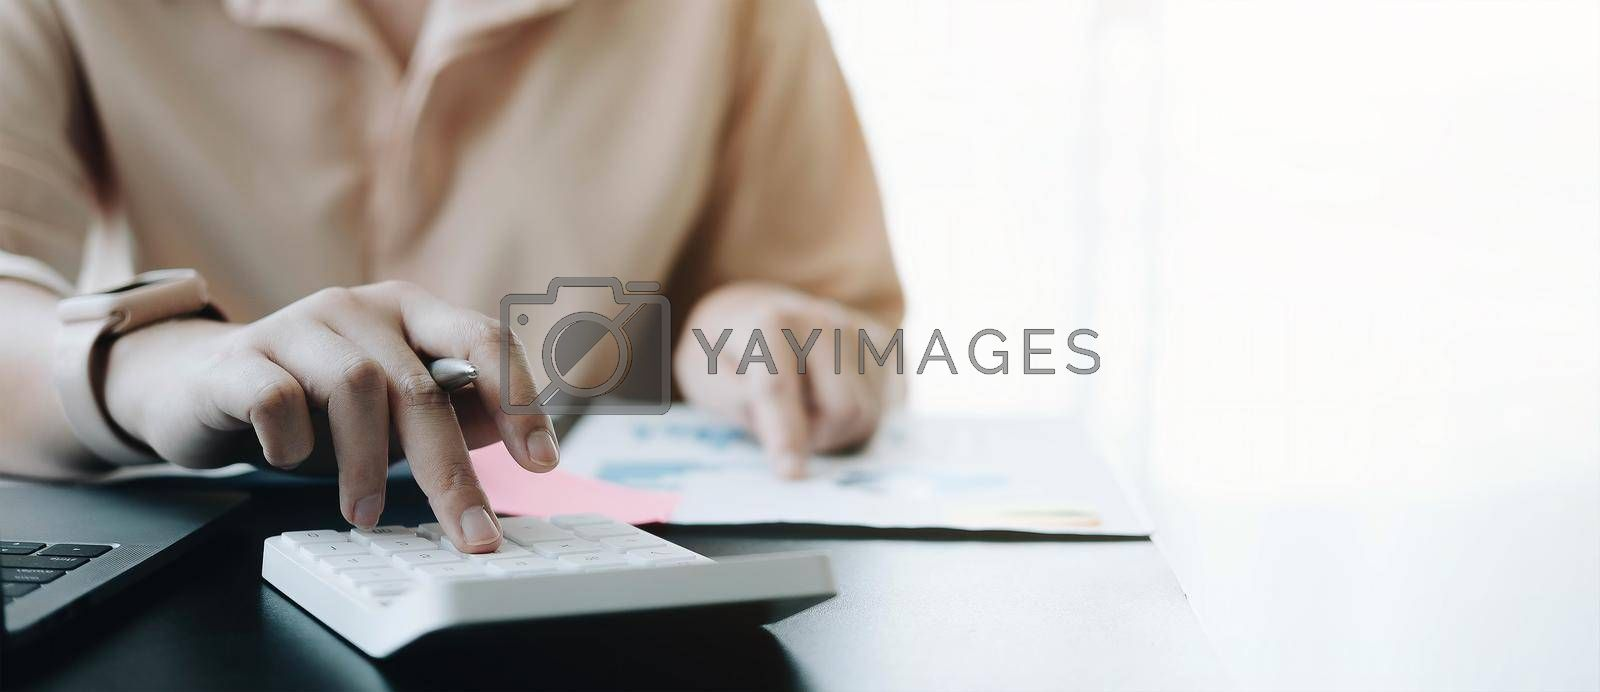 Close up Business woman using calculator and laptop for do math finance on wooden desk in office and business working background, tax, accounting, statistics and analytic research concept.